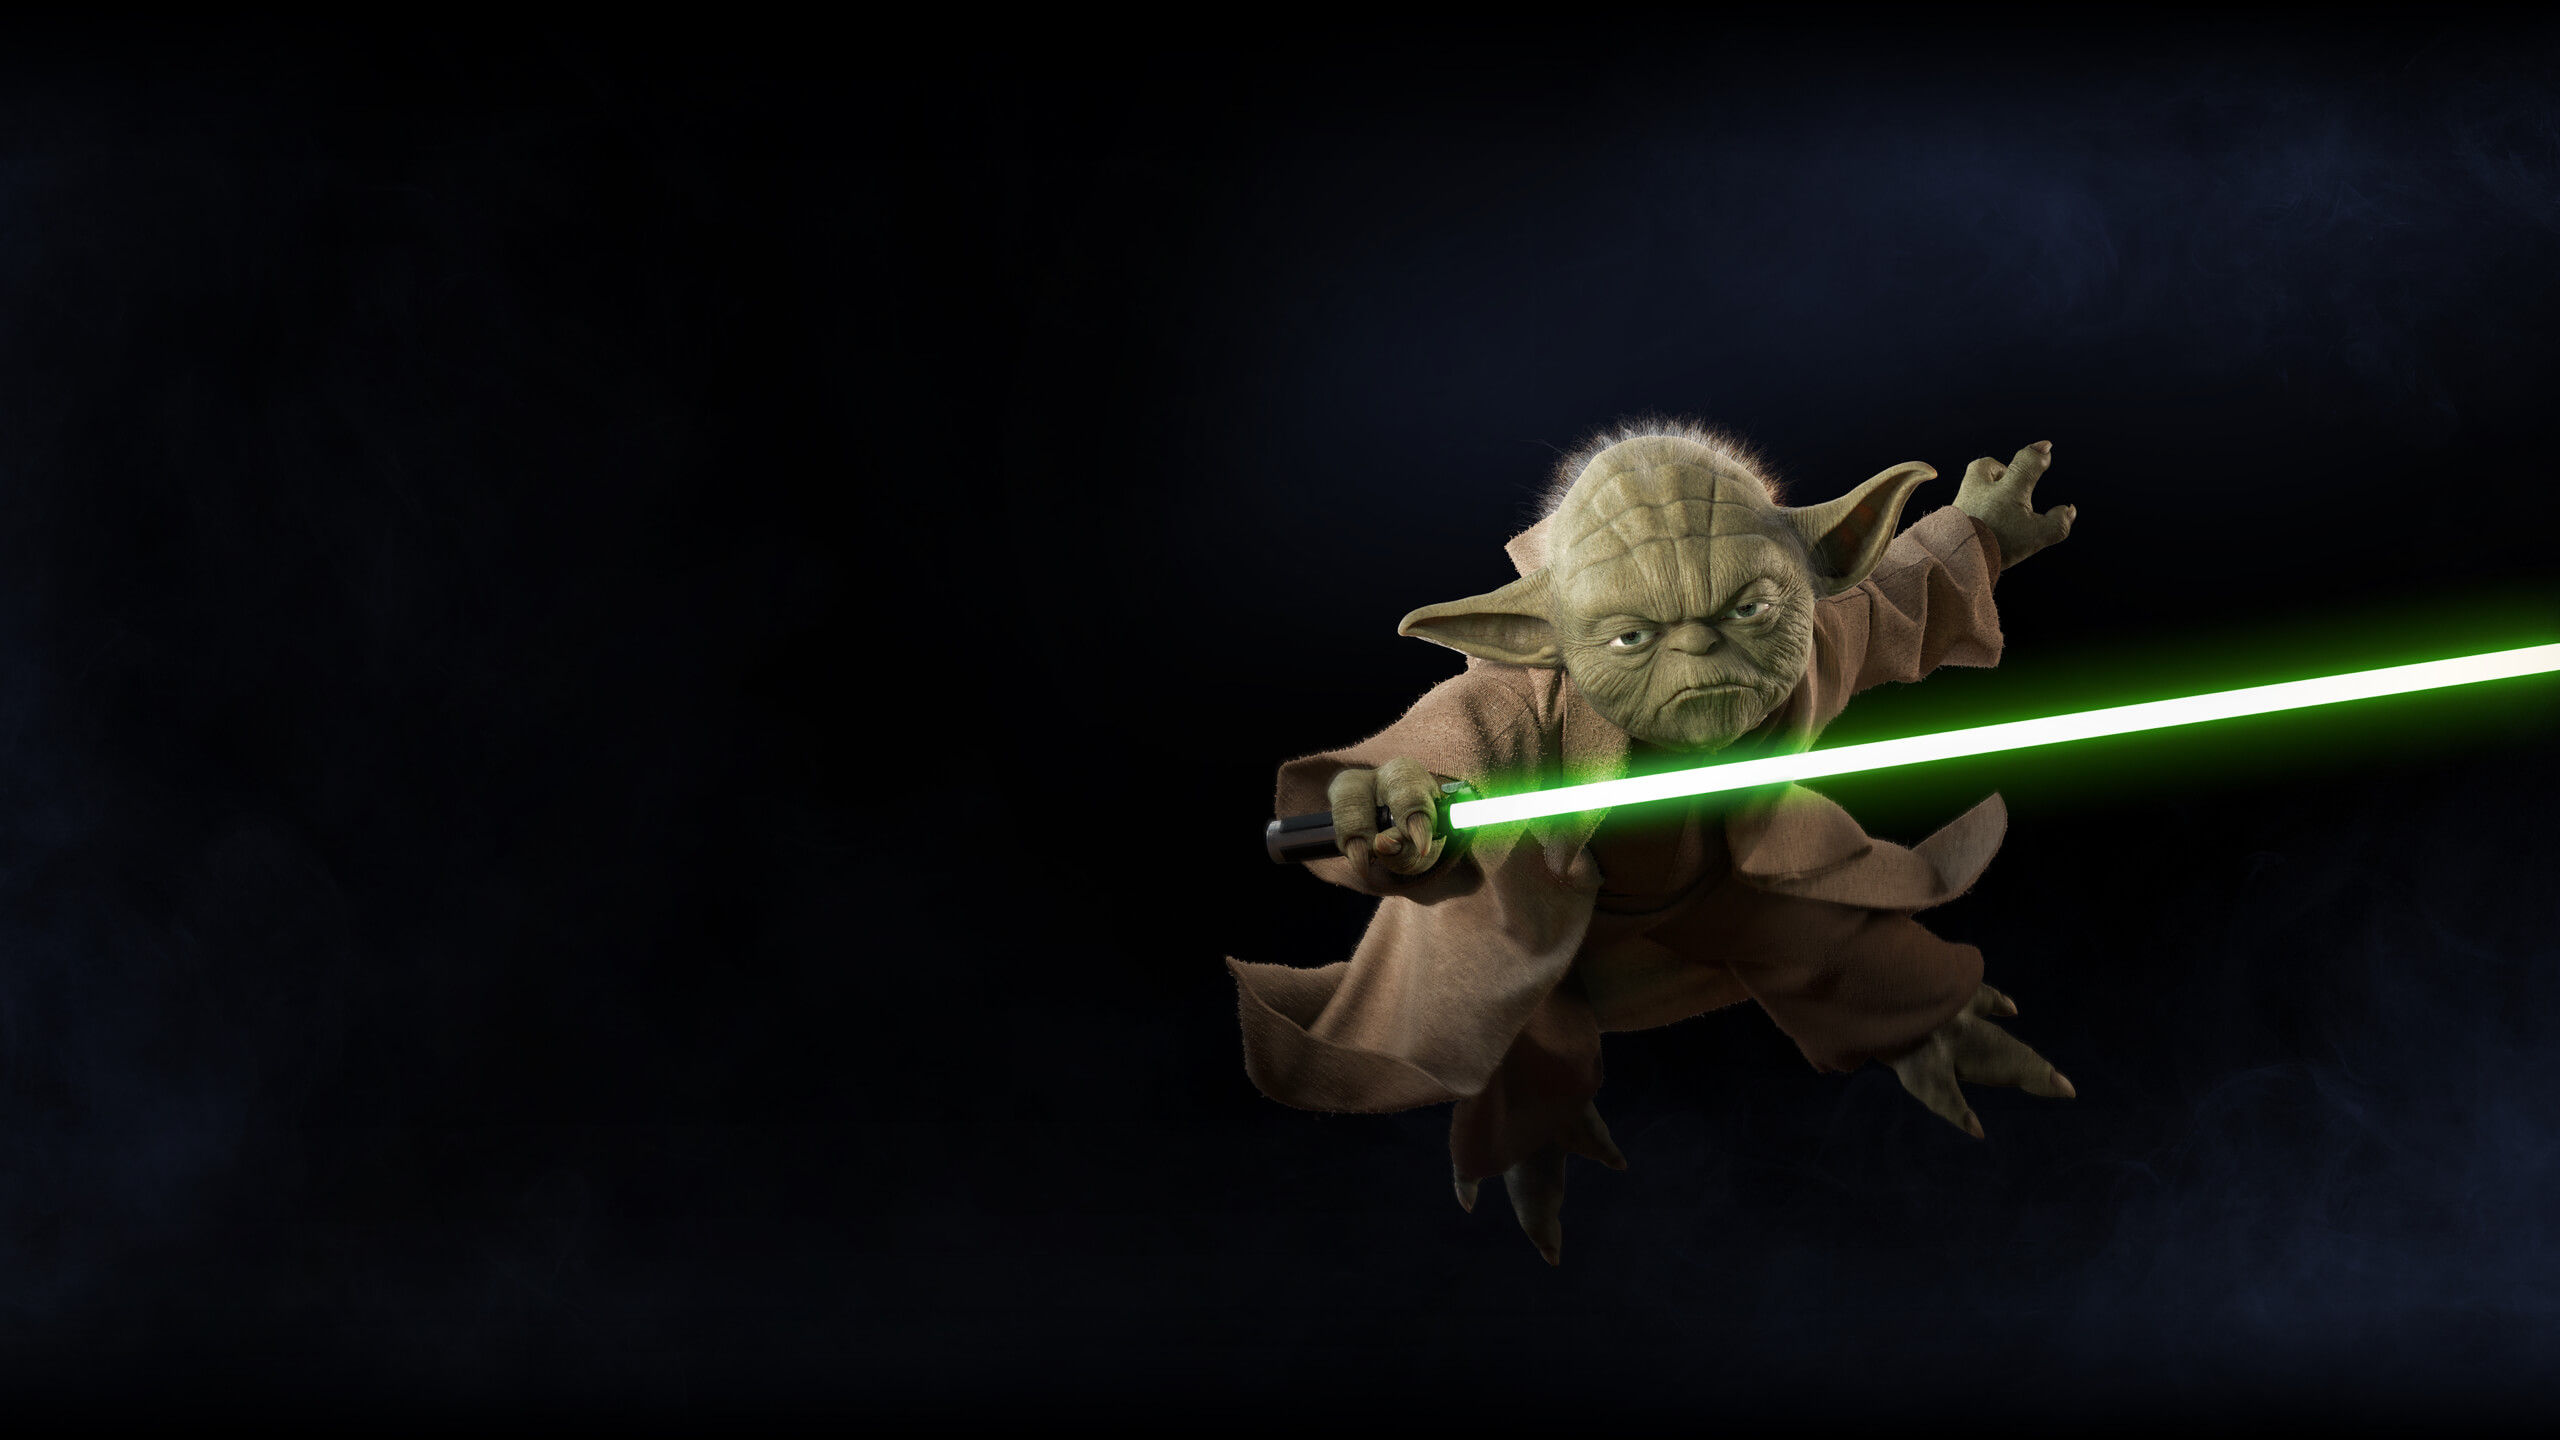 Yoda Star Wars Battlefront Ii Hd Games 4k Wallpapers Images Backgrounds Photos And Pictures